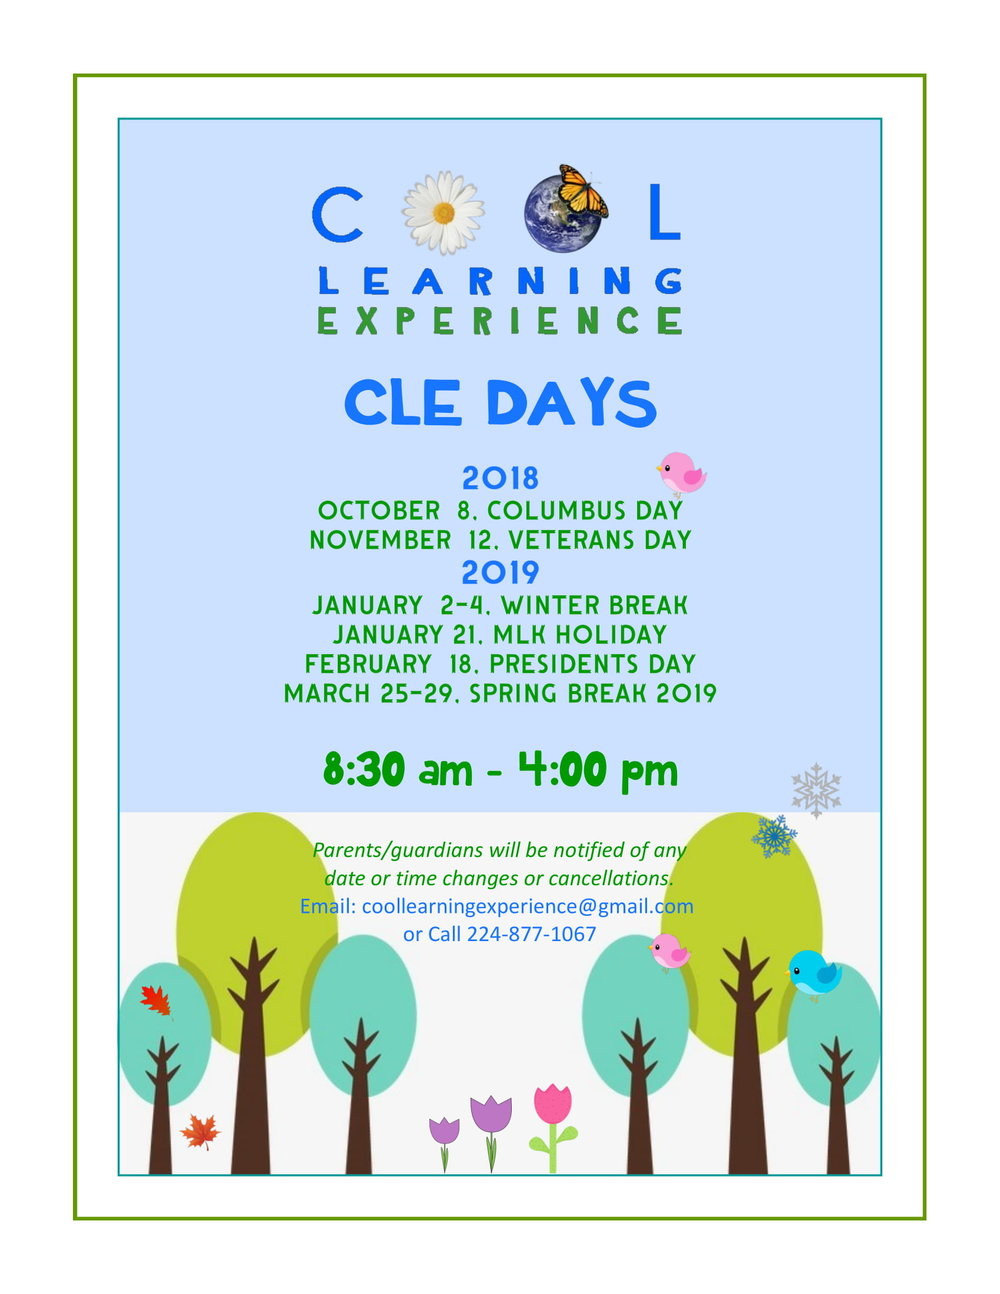 Summer may be coming to an end, but learning sure isn't. - Join us for CLE Days this school year. Please note that capacity is limited. To register and reserve your spot please contact us at coollearningexperience@gmail.com or 224-877-1067.